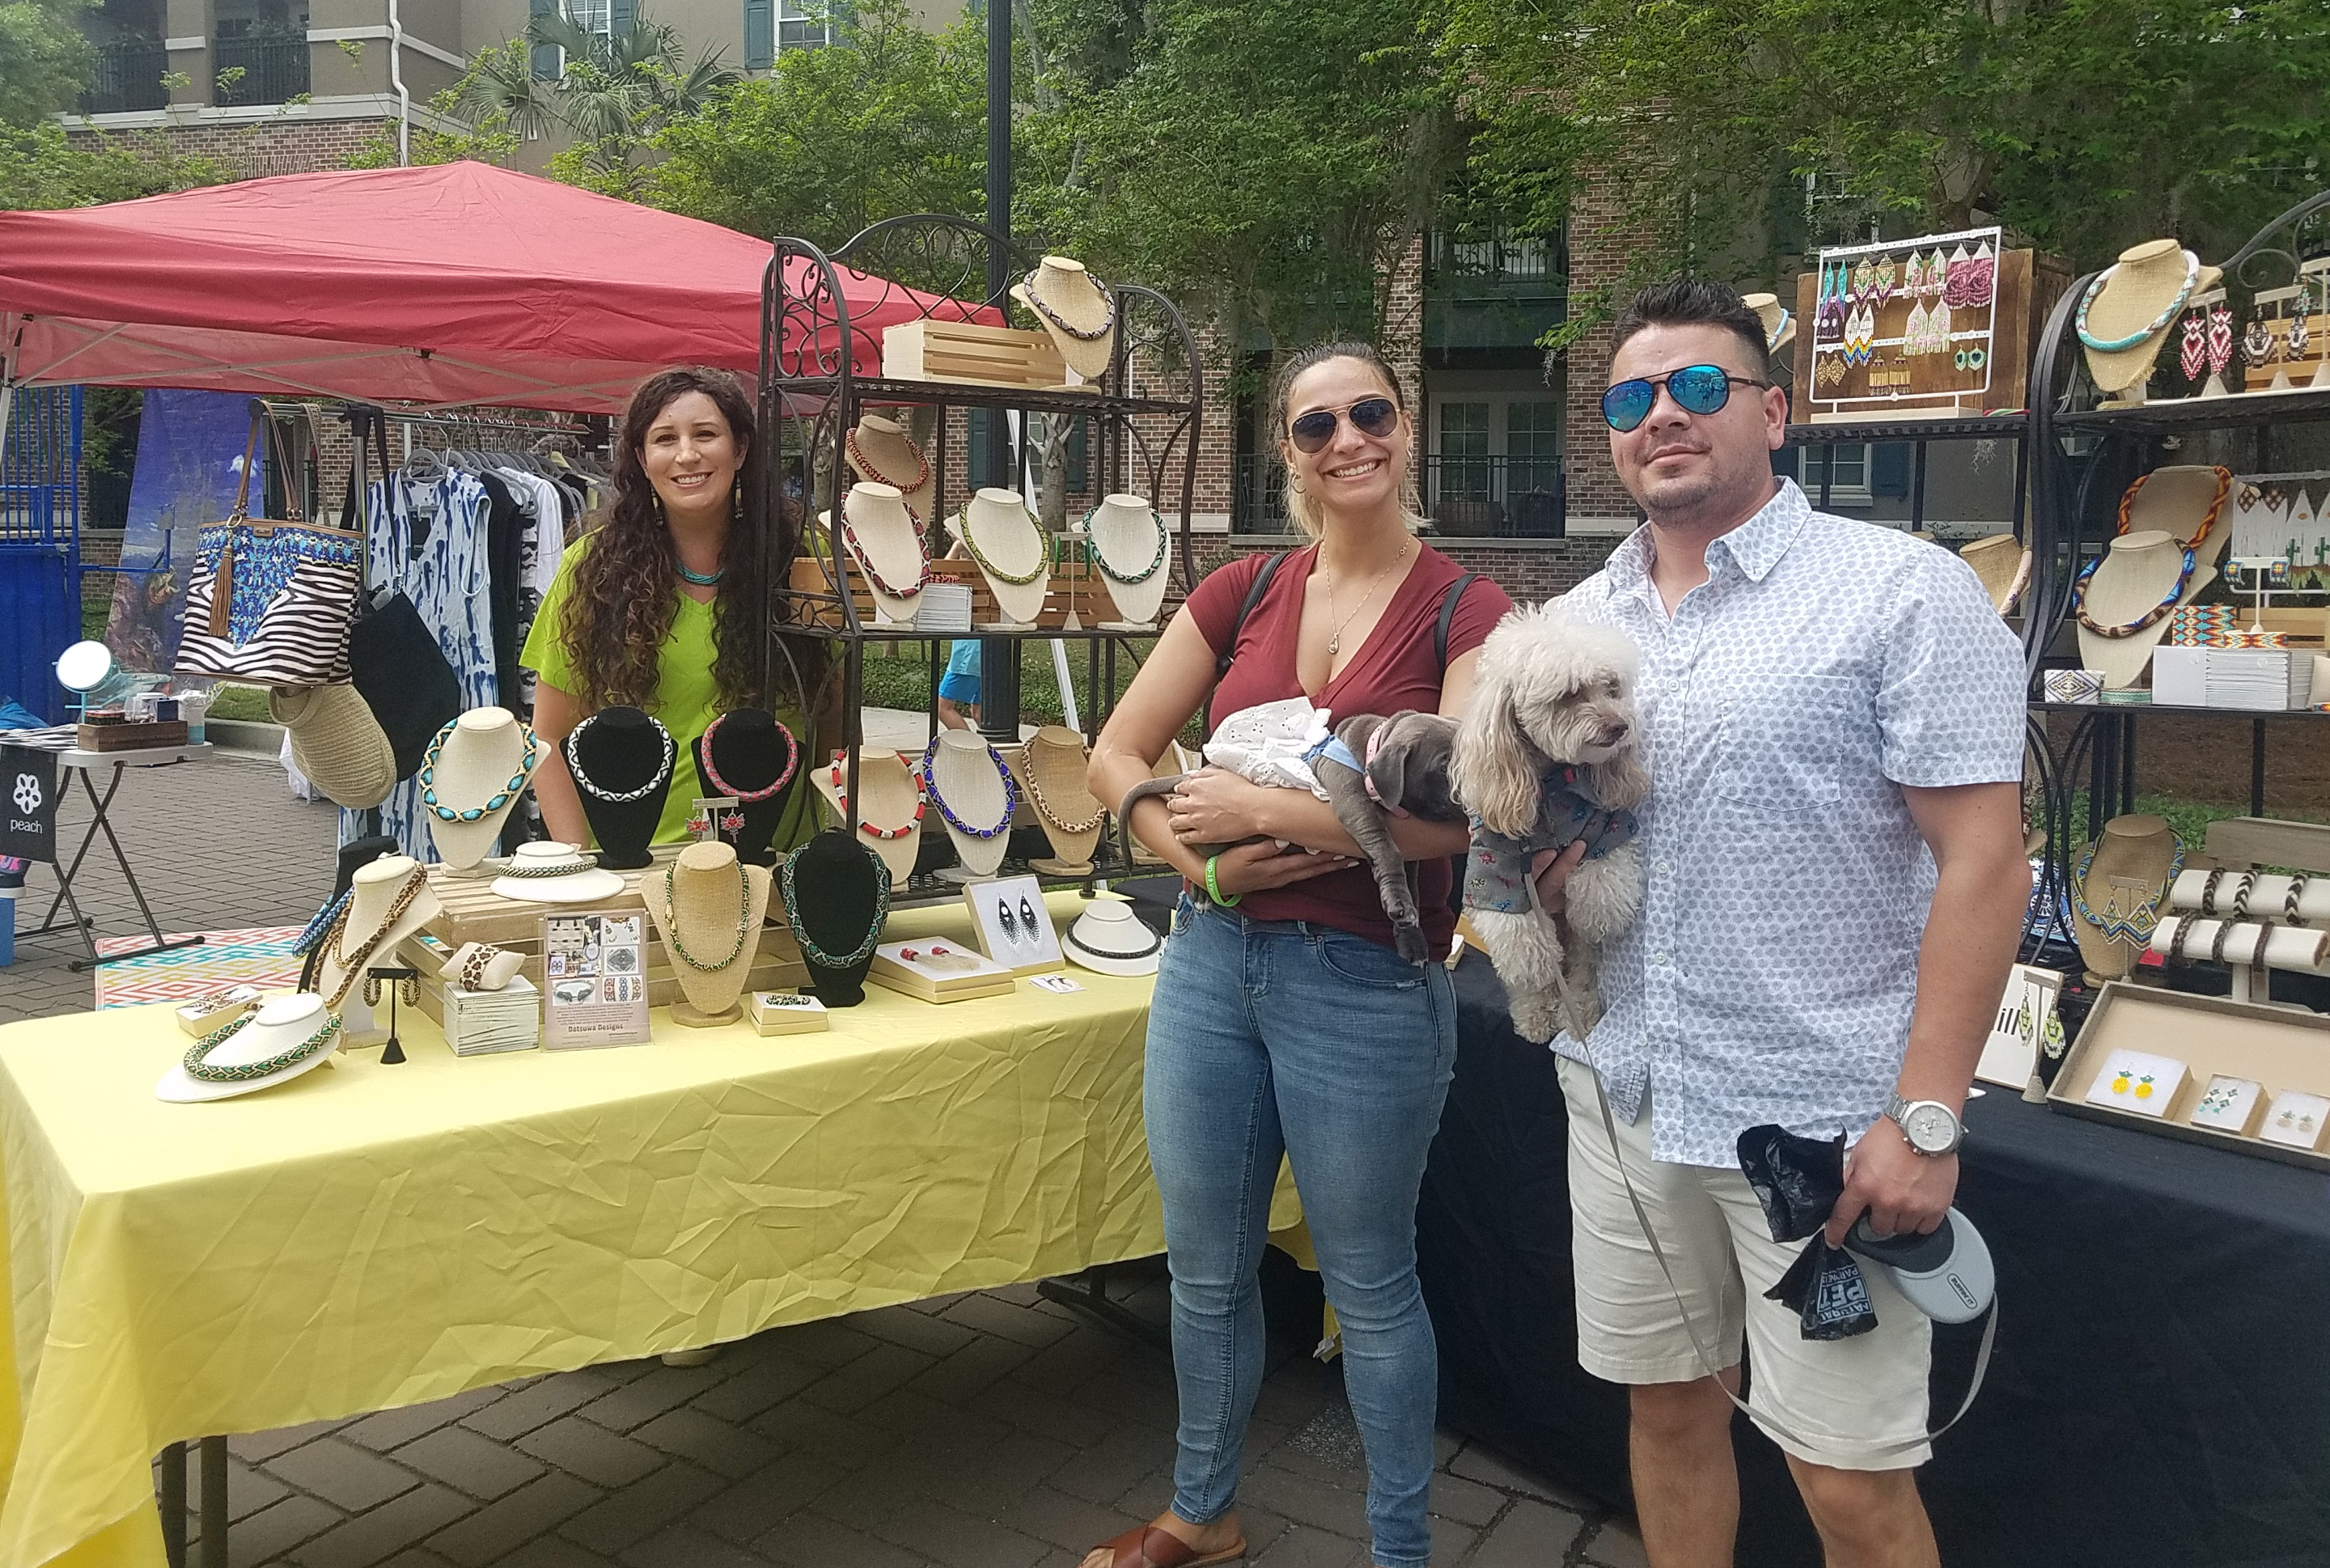 Suzanne Detar - Jessica with Dotsuwa Designs showed her wares to Debbie, holding Gorda, and to Carlos, holding Pumba.